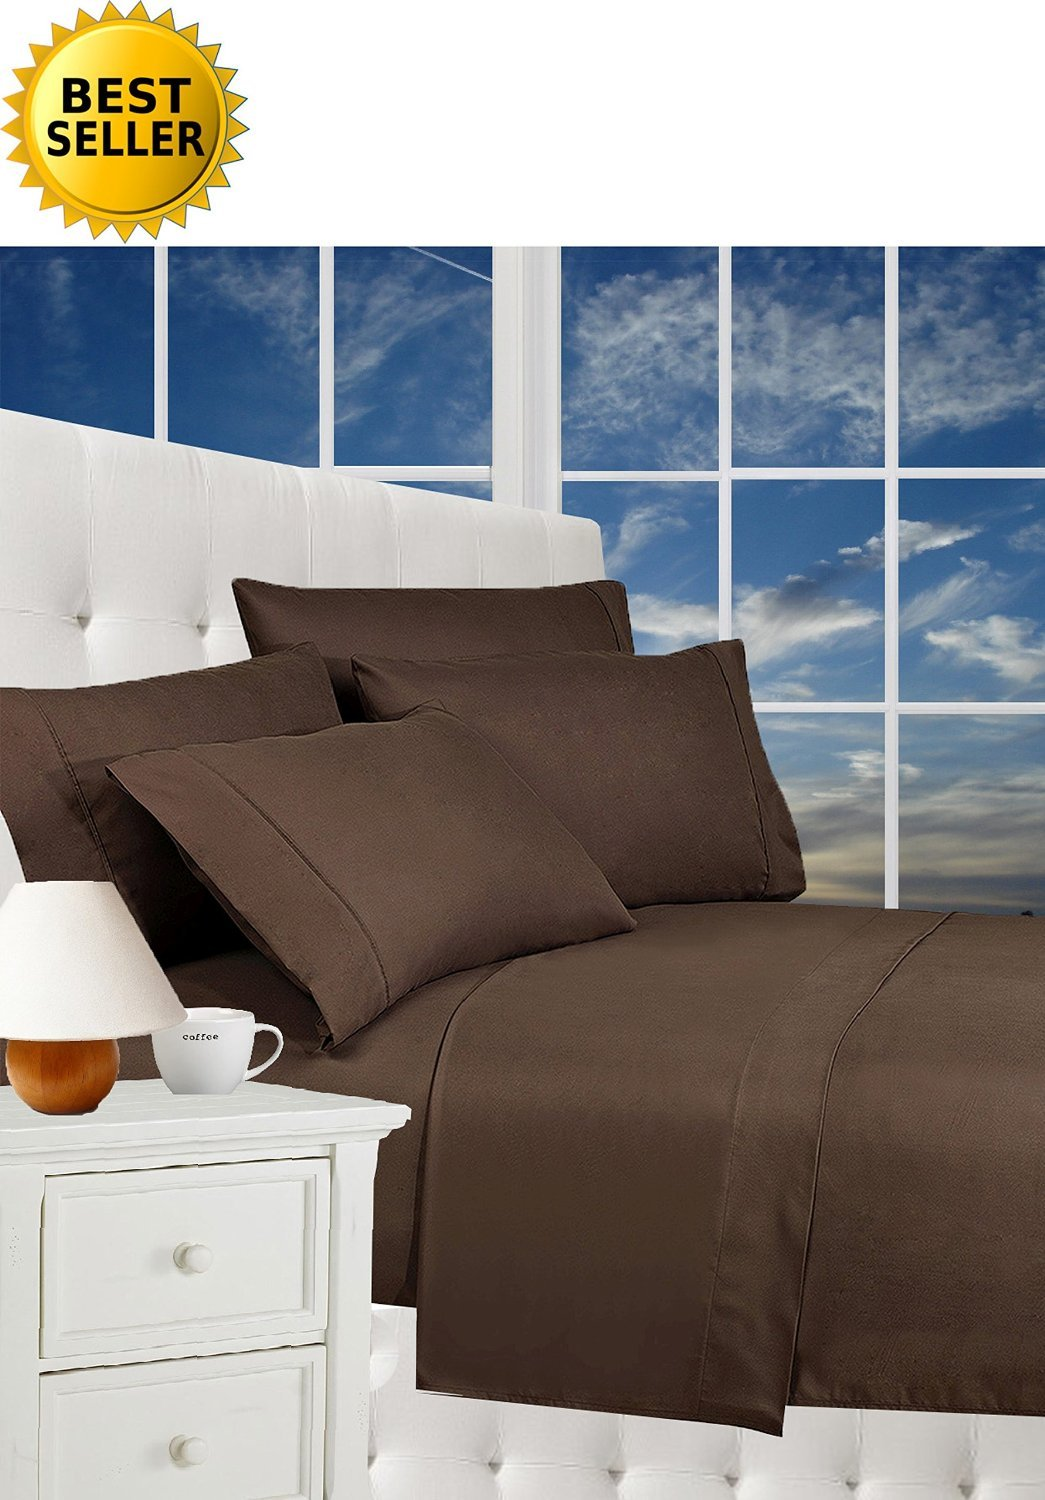 3-Piece Duvet Set 100% HypoAllergenic, King/California King - Chocolate Brown